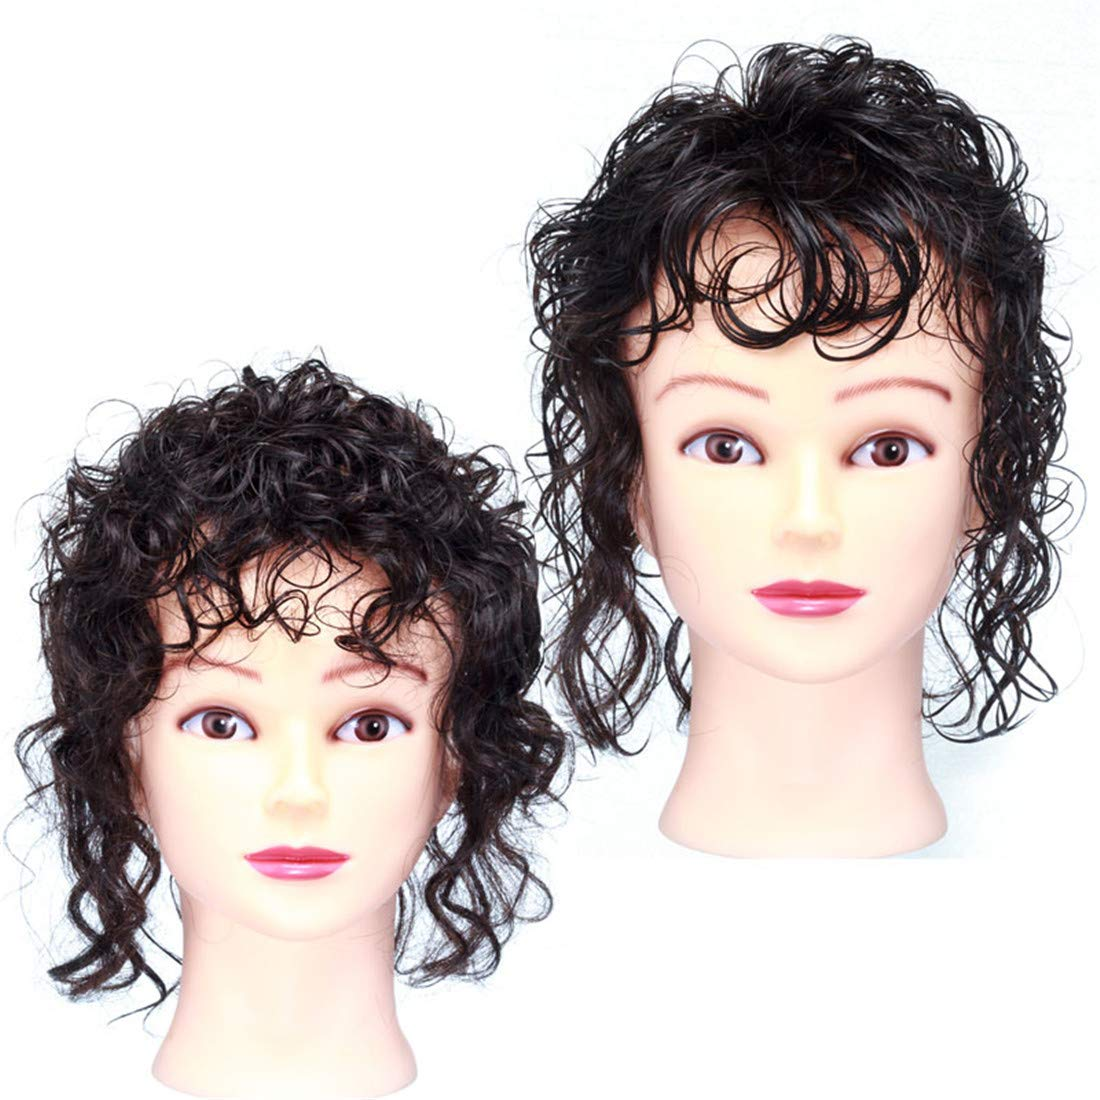 Invisible Human Hair Topper with Bangs for Women, Curly Wavy Crown Volume Hairpiece Clip in 7